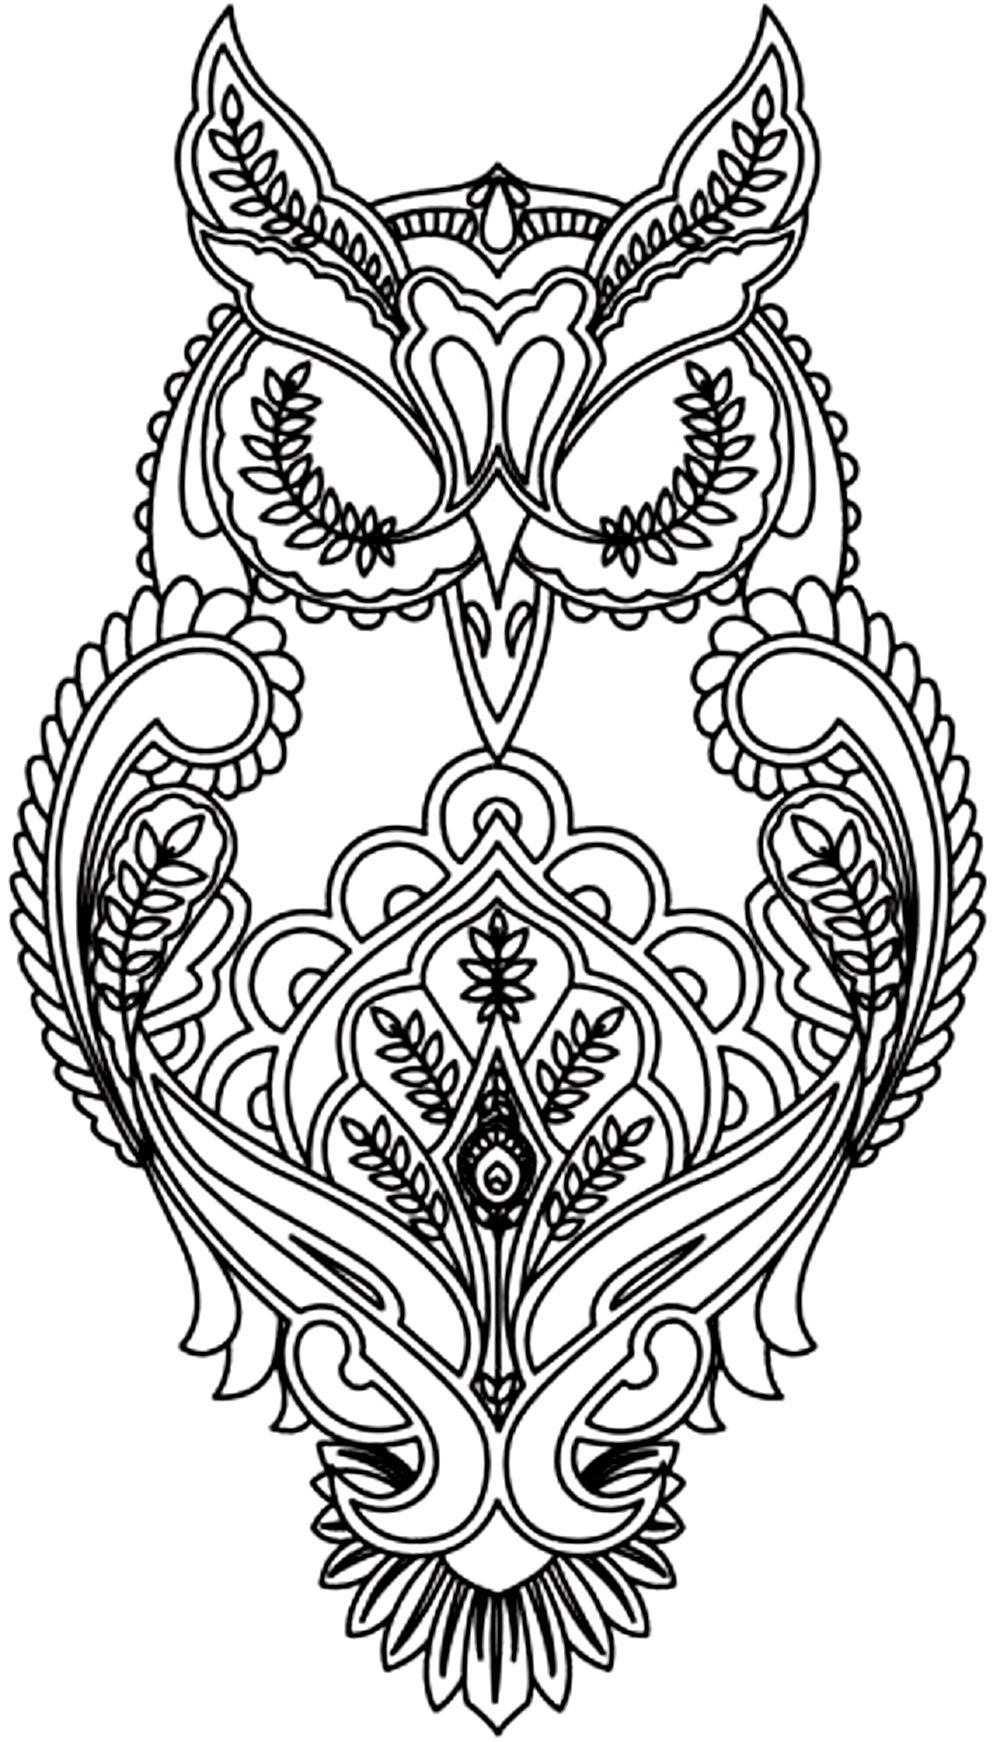 Coloring pitchers of animals - Free Coloring Page Coloring Adult Difficult Owl